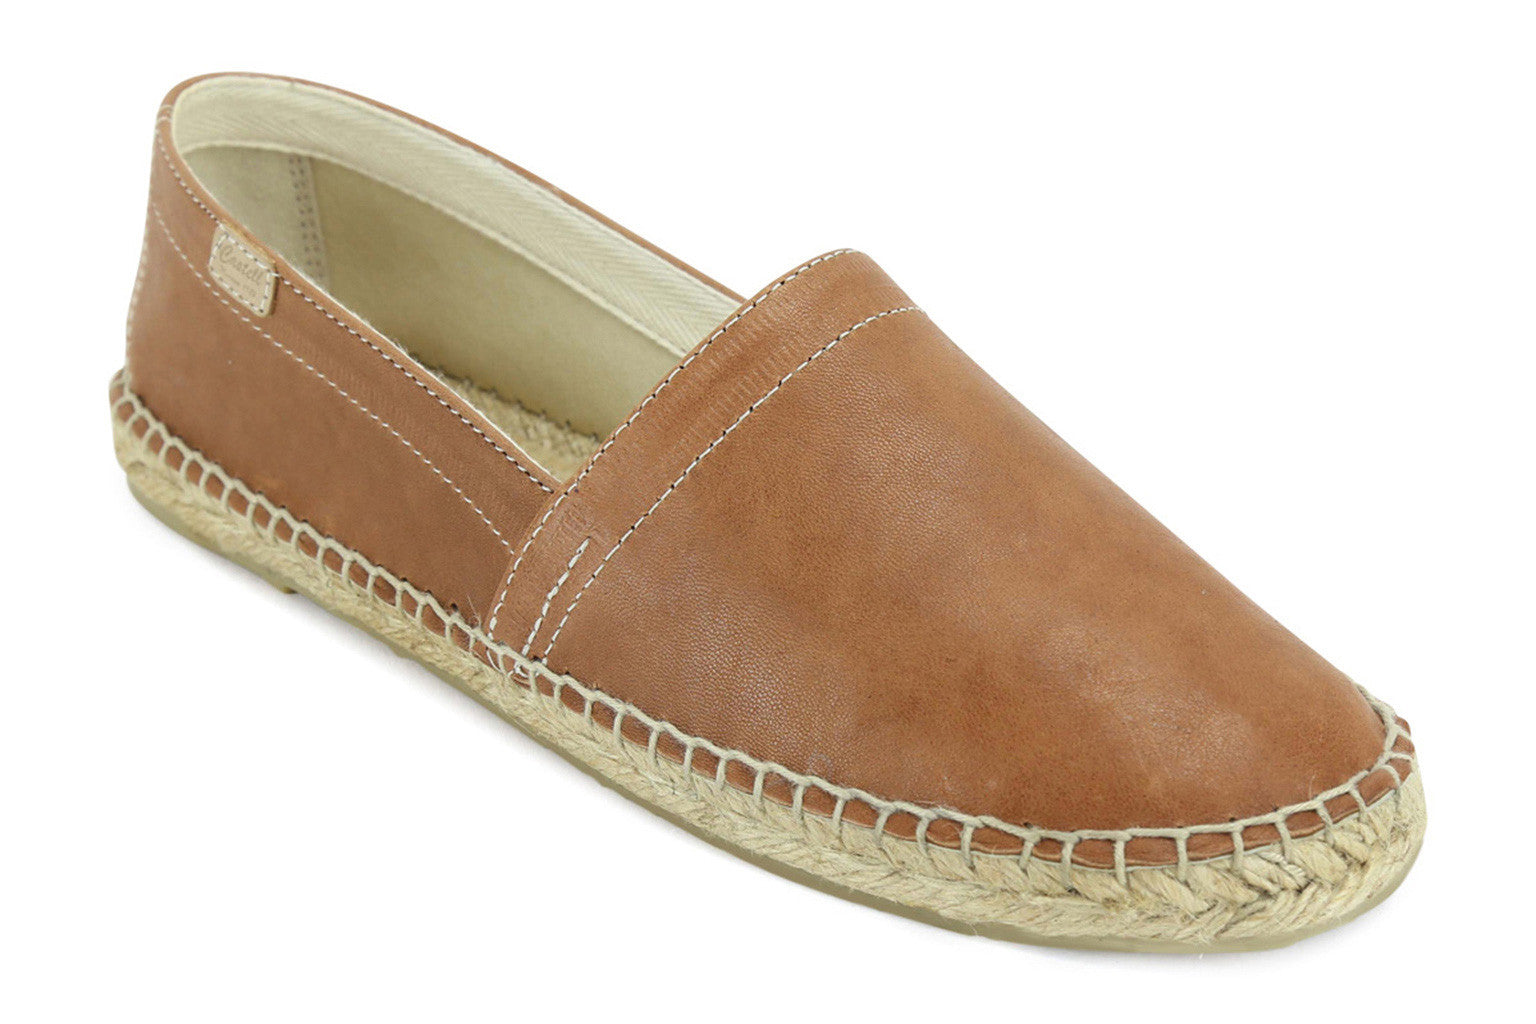 523641038f8d Castell Women s Brown Leather Espadrilles - THE AVARCA STORE